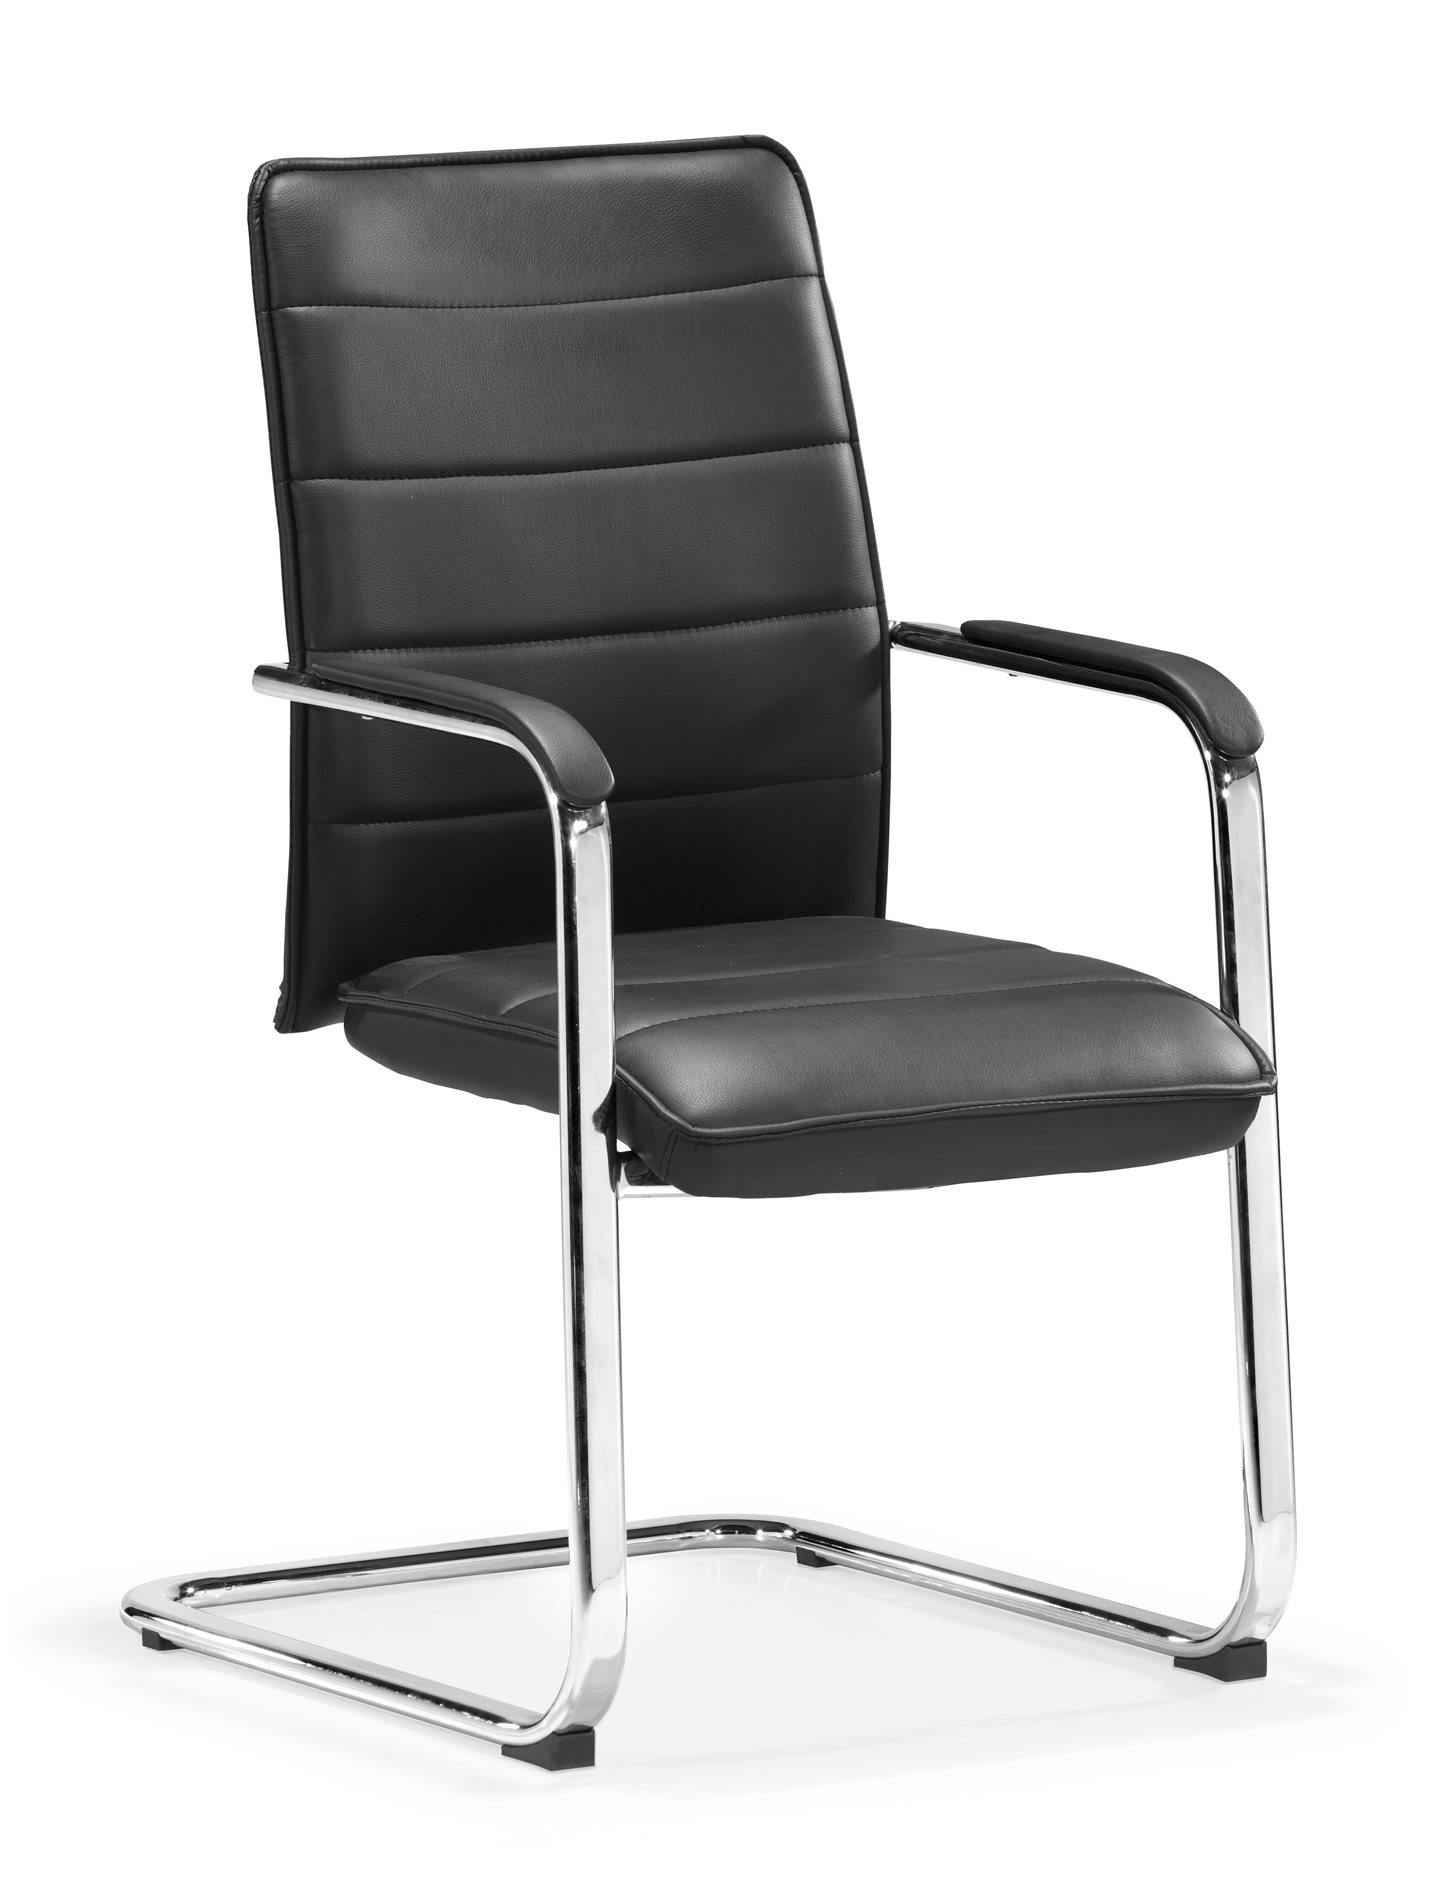 modern conference chairs pub height target crix chair pack of 2 xmz 861502